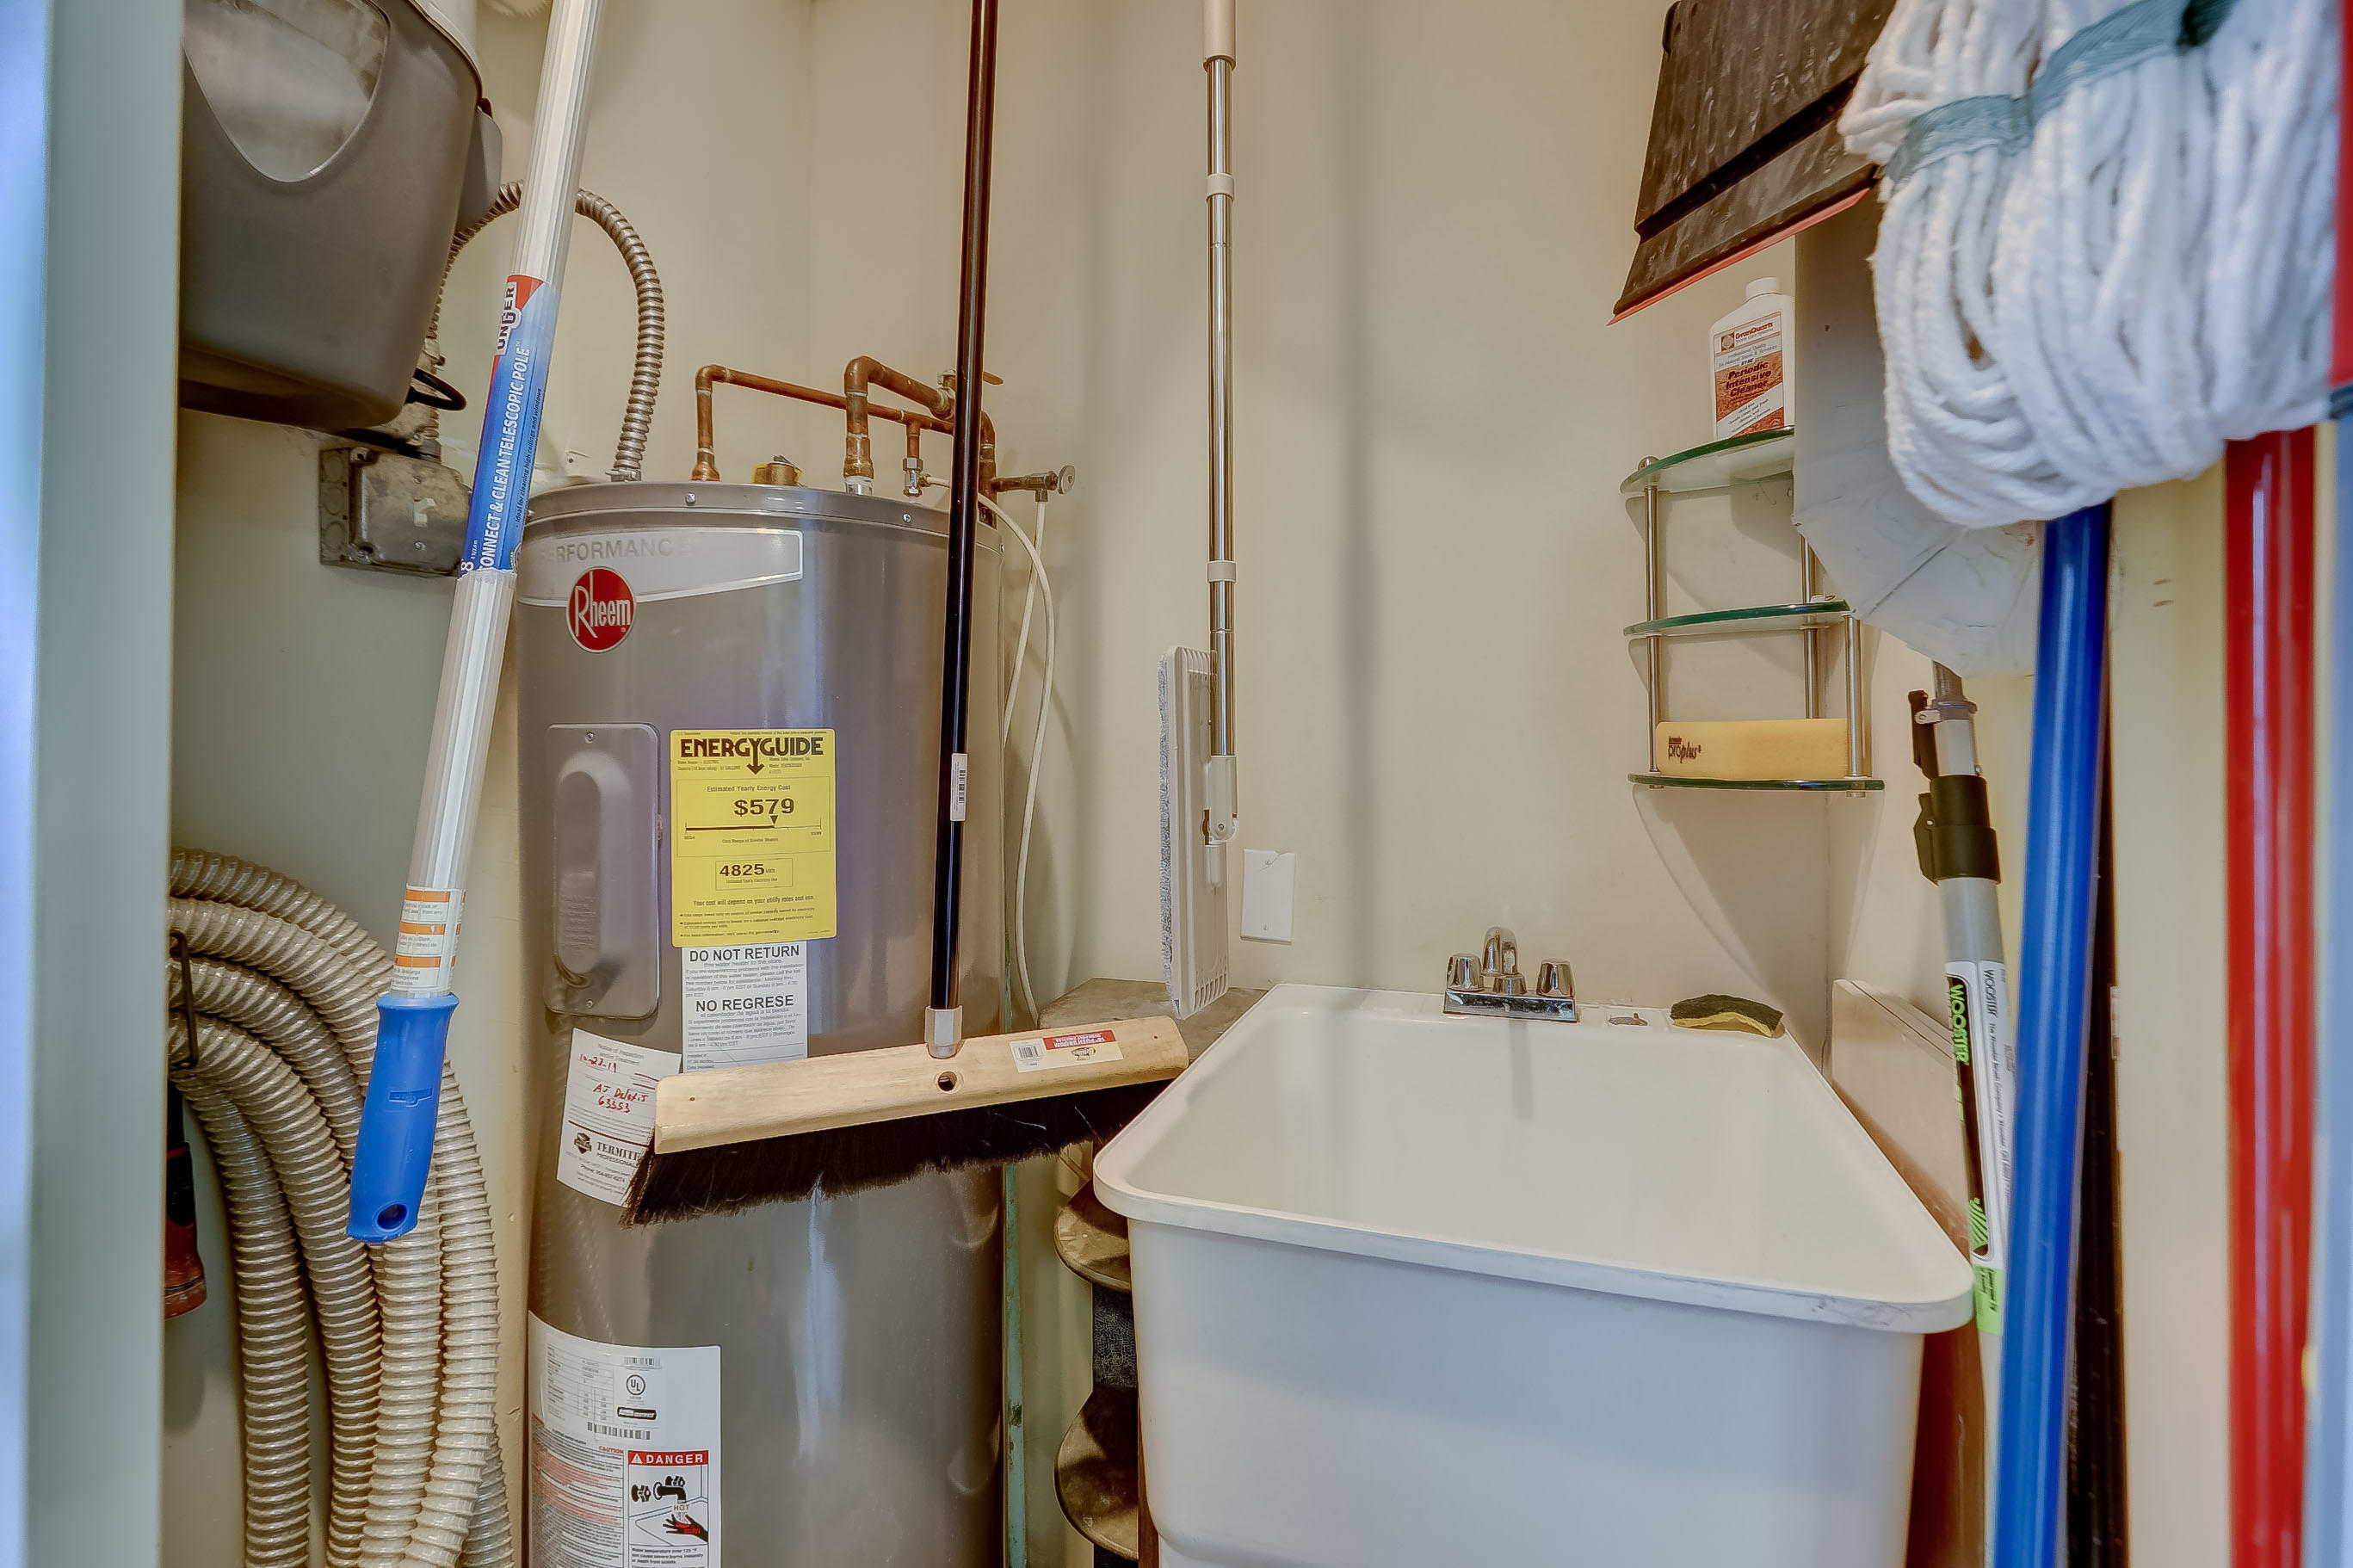 With Utility Sink and Water Heater